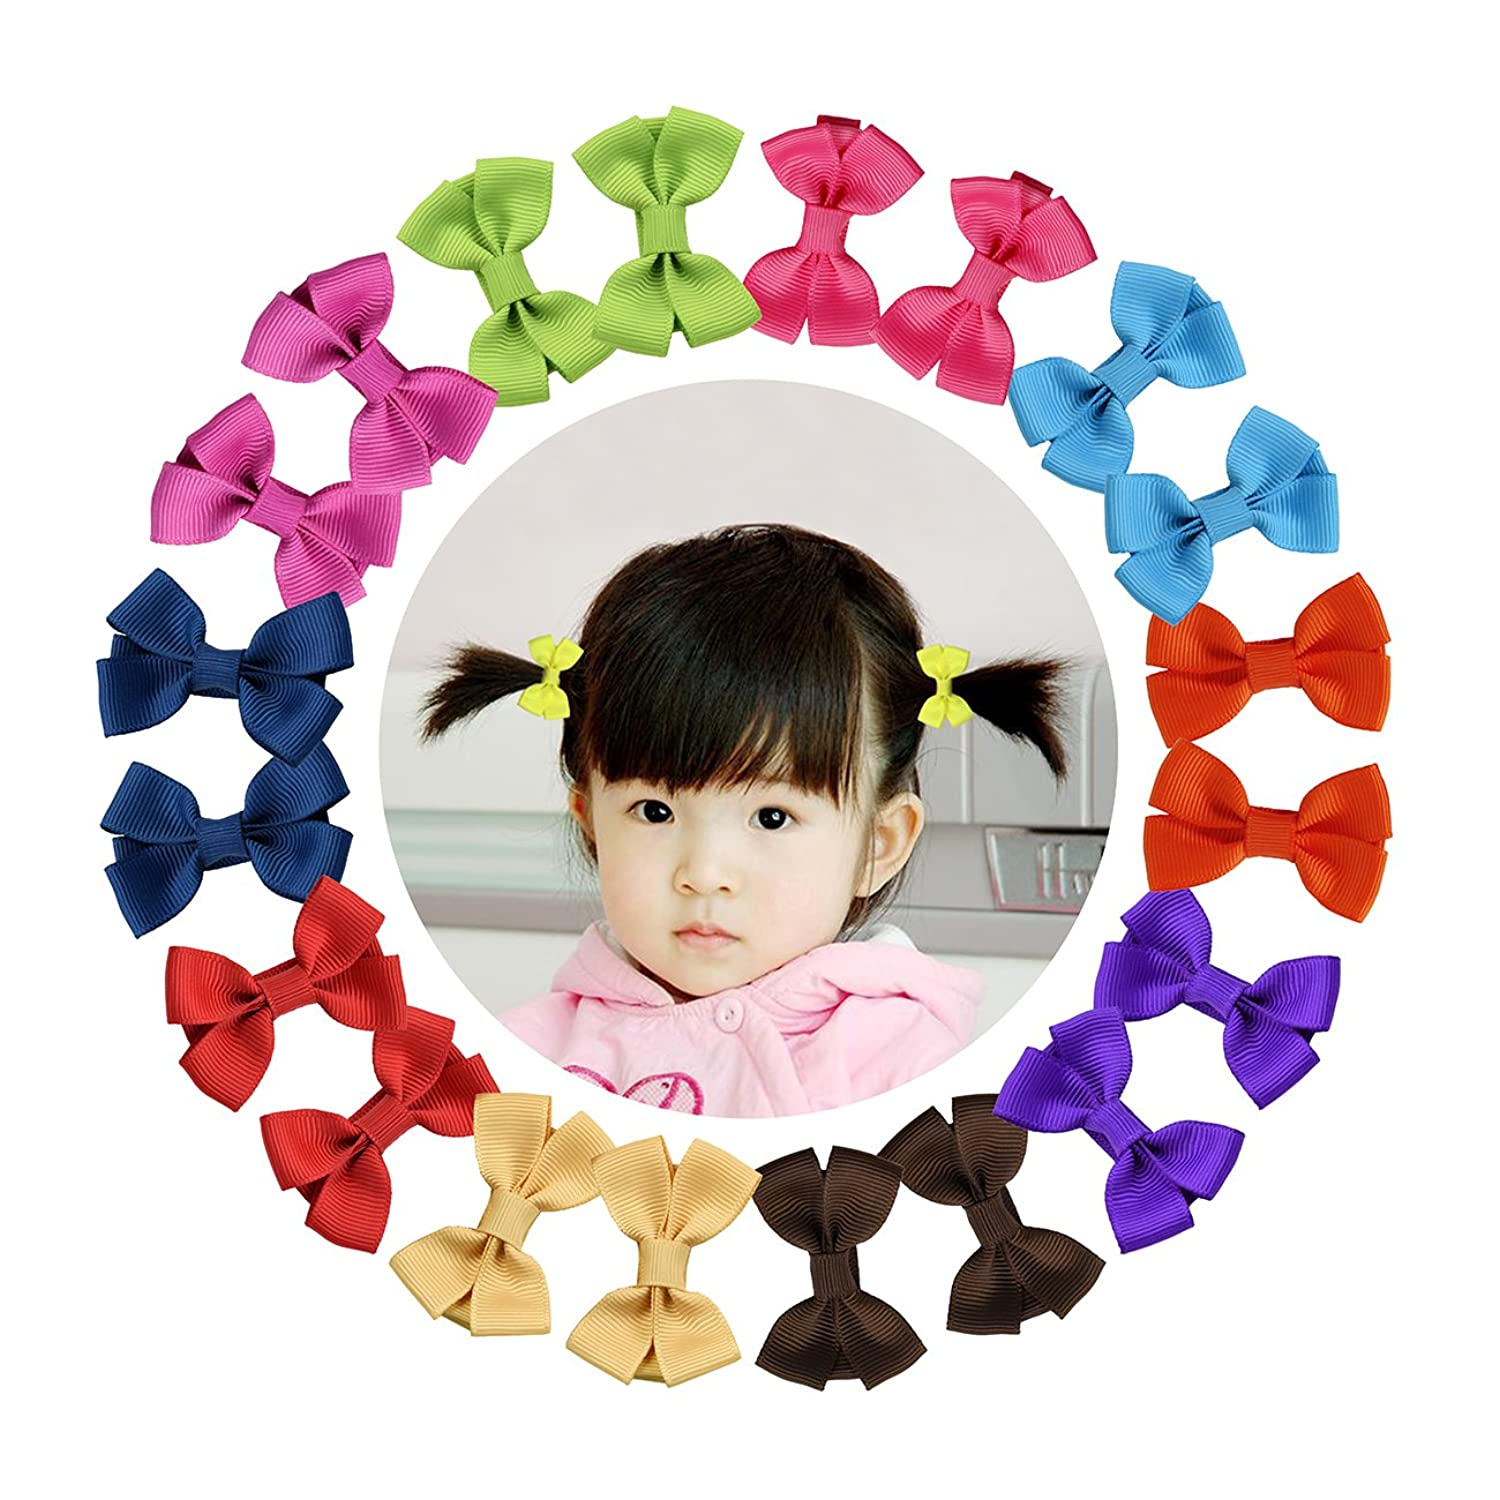 Be best hair accessories for baby - Shemay 10 Pairs 2 Tiny Boutique Grosgrain Ribbon Hair Bow Alligator Clips Barrettes For Baby